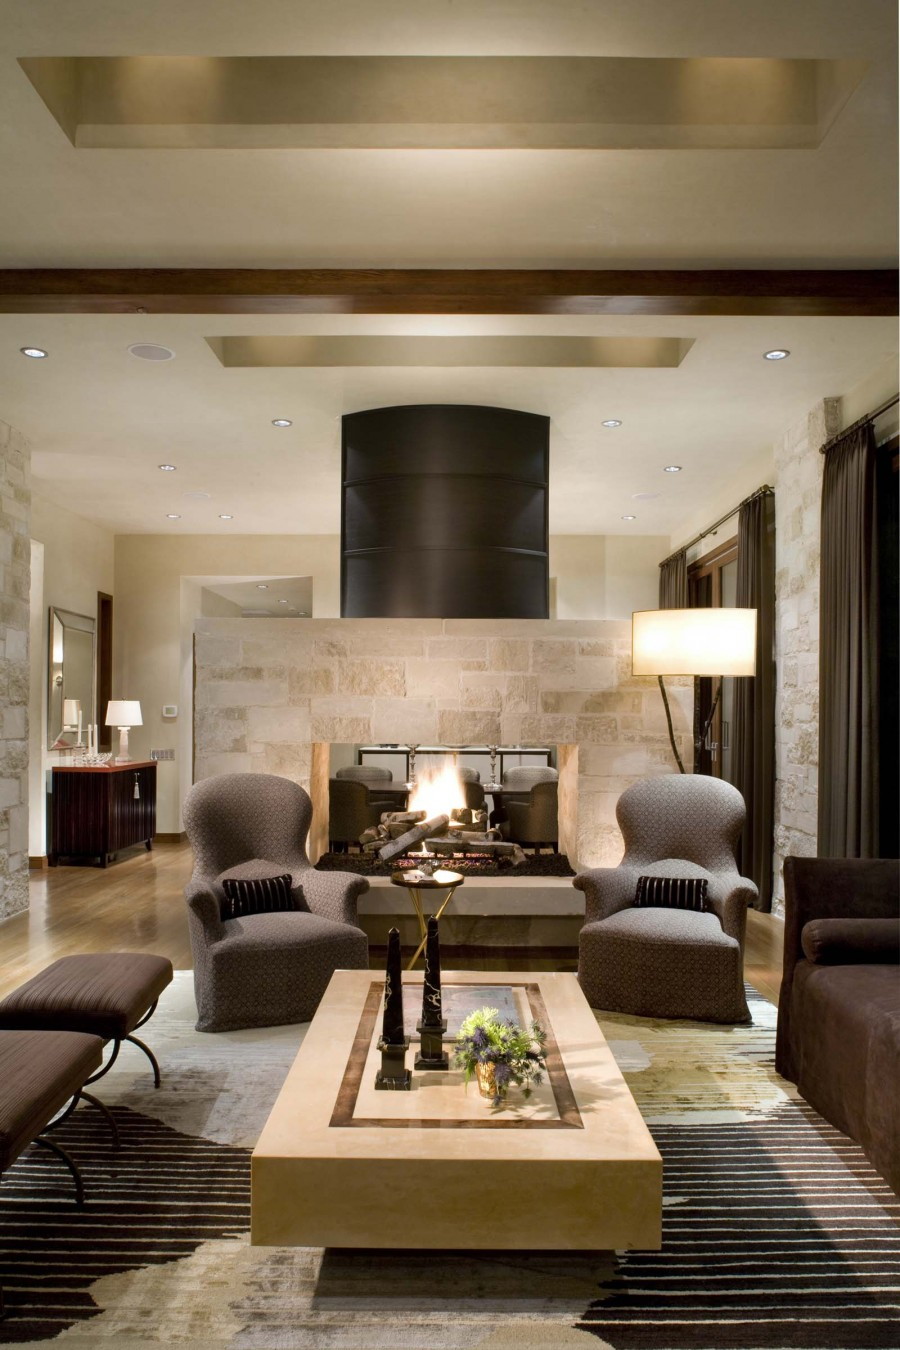 16 fabulous earth tones living room designs decoholic for Sitting room design ideas